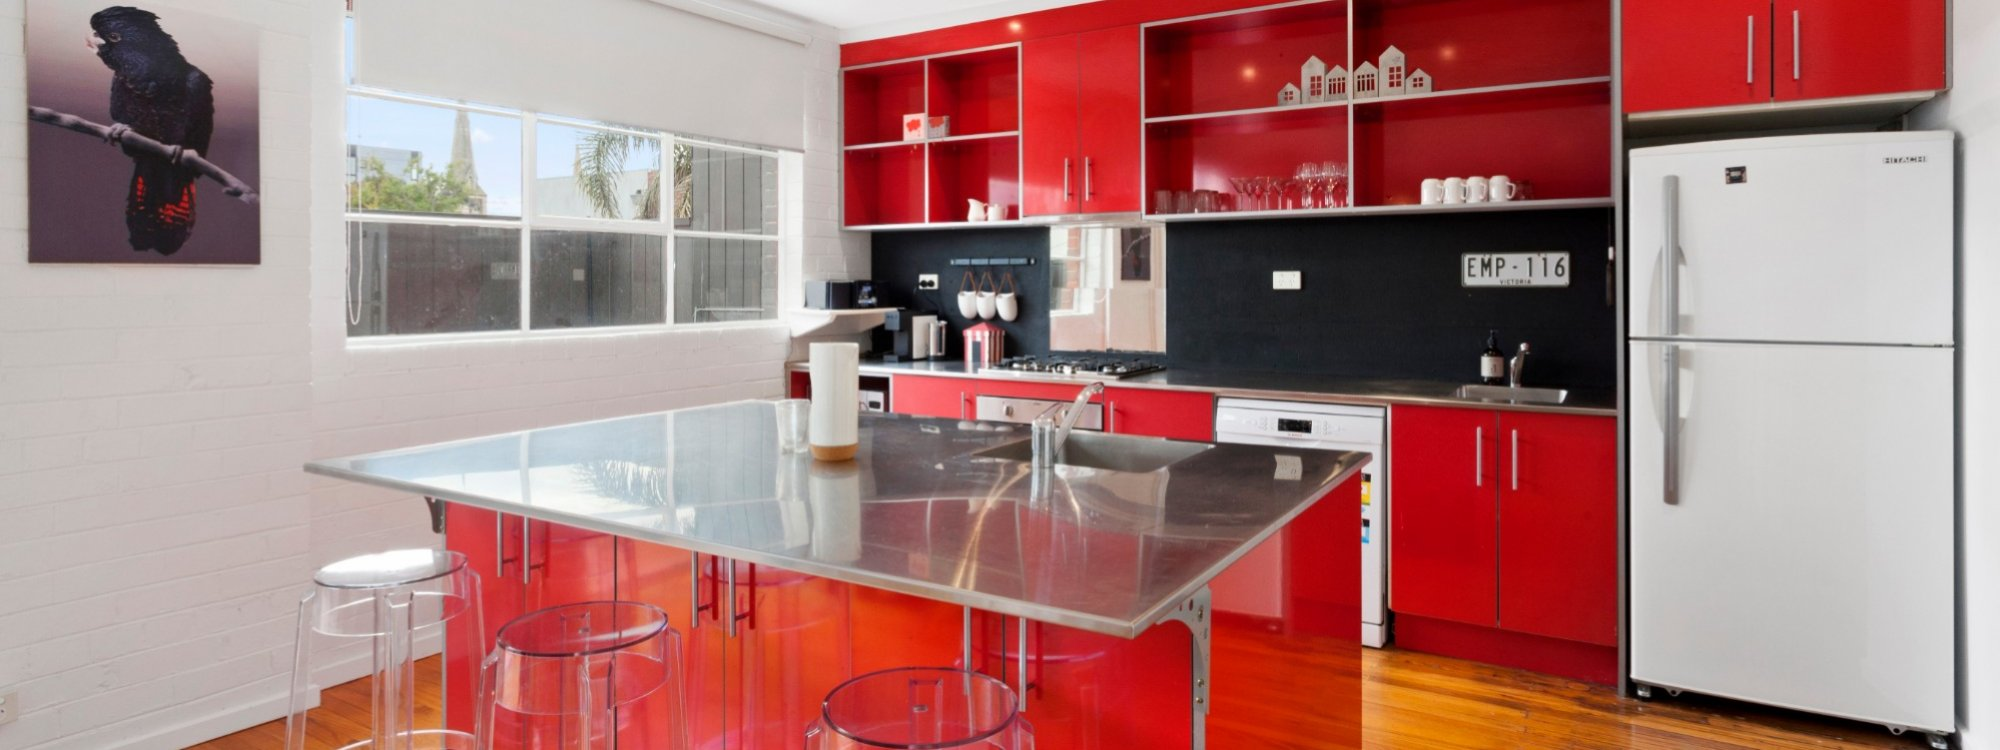 Manallack Apartments Olley - Melbourne - Kitchen 3